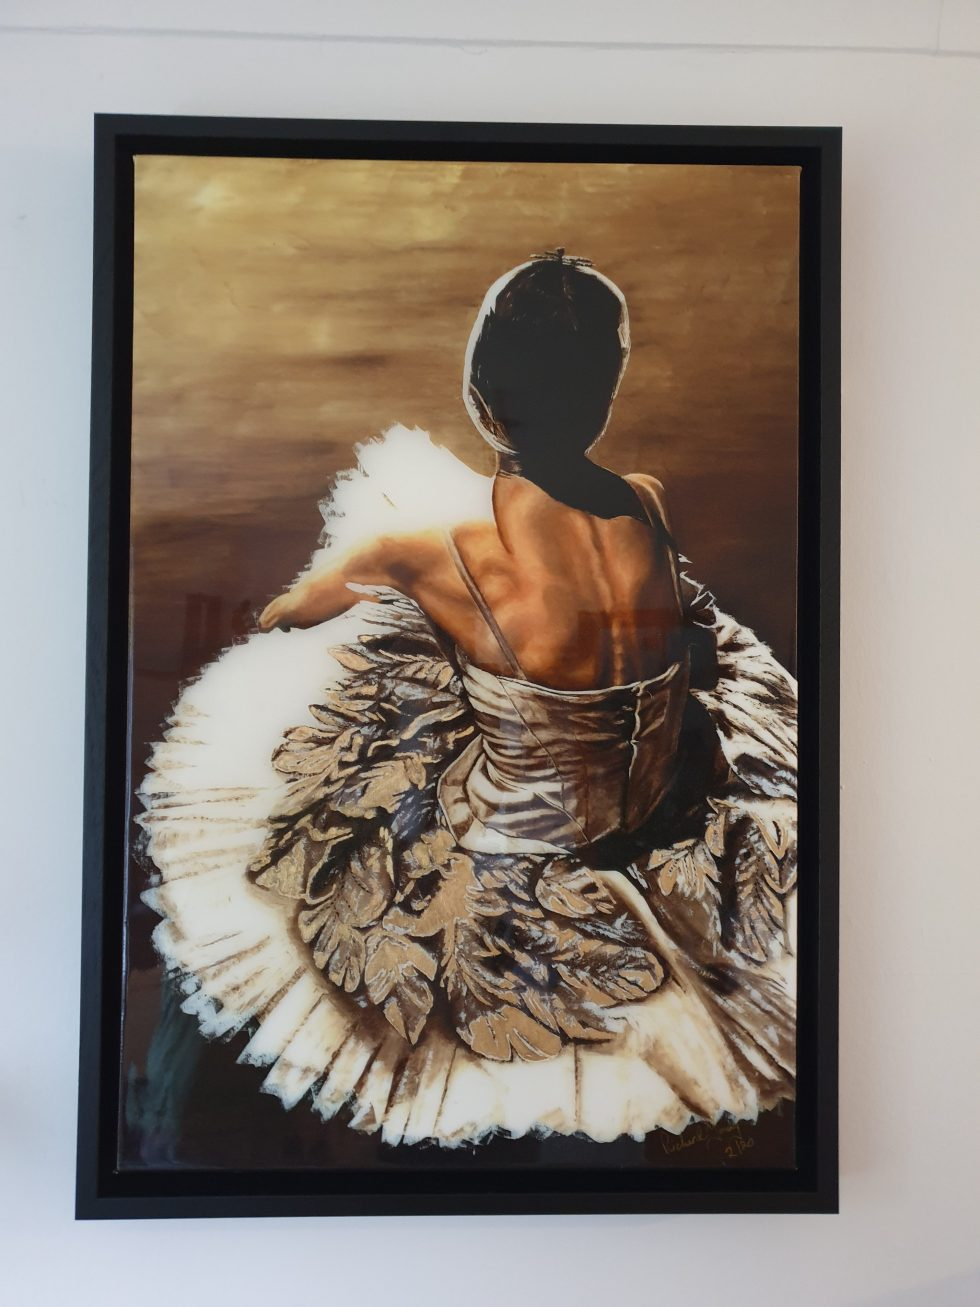 Waiting in the Wings ltd edition hand embellished resin print framed - 2